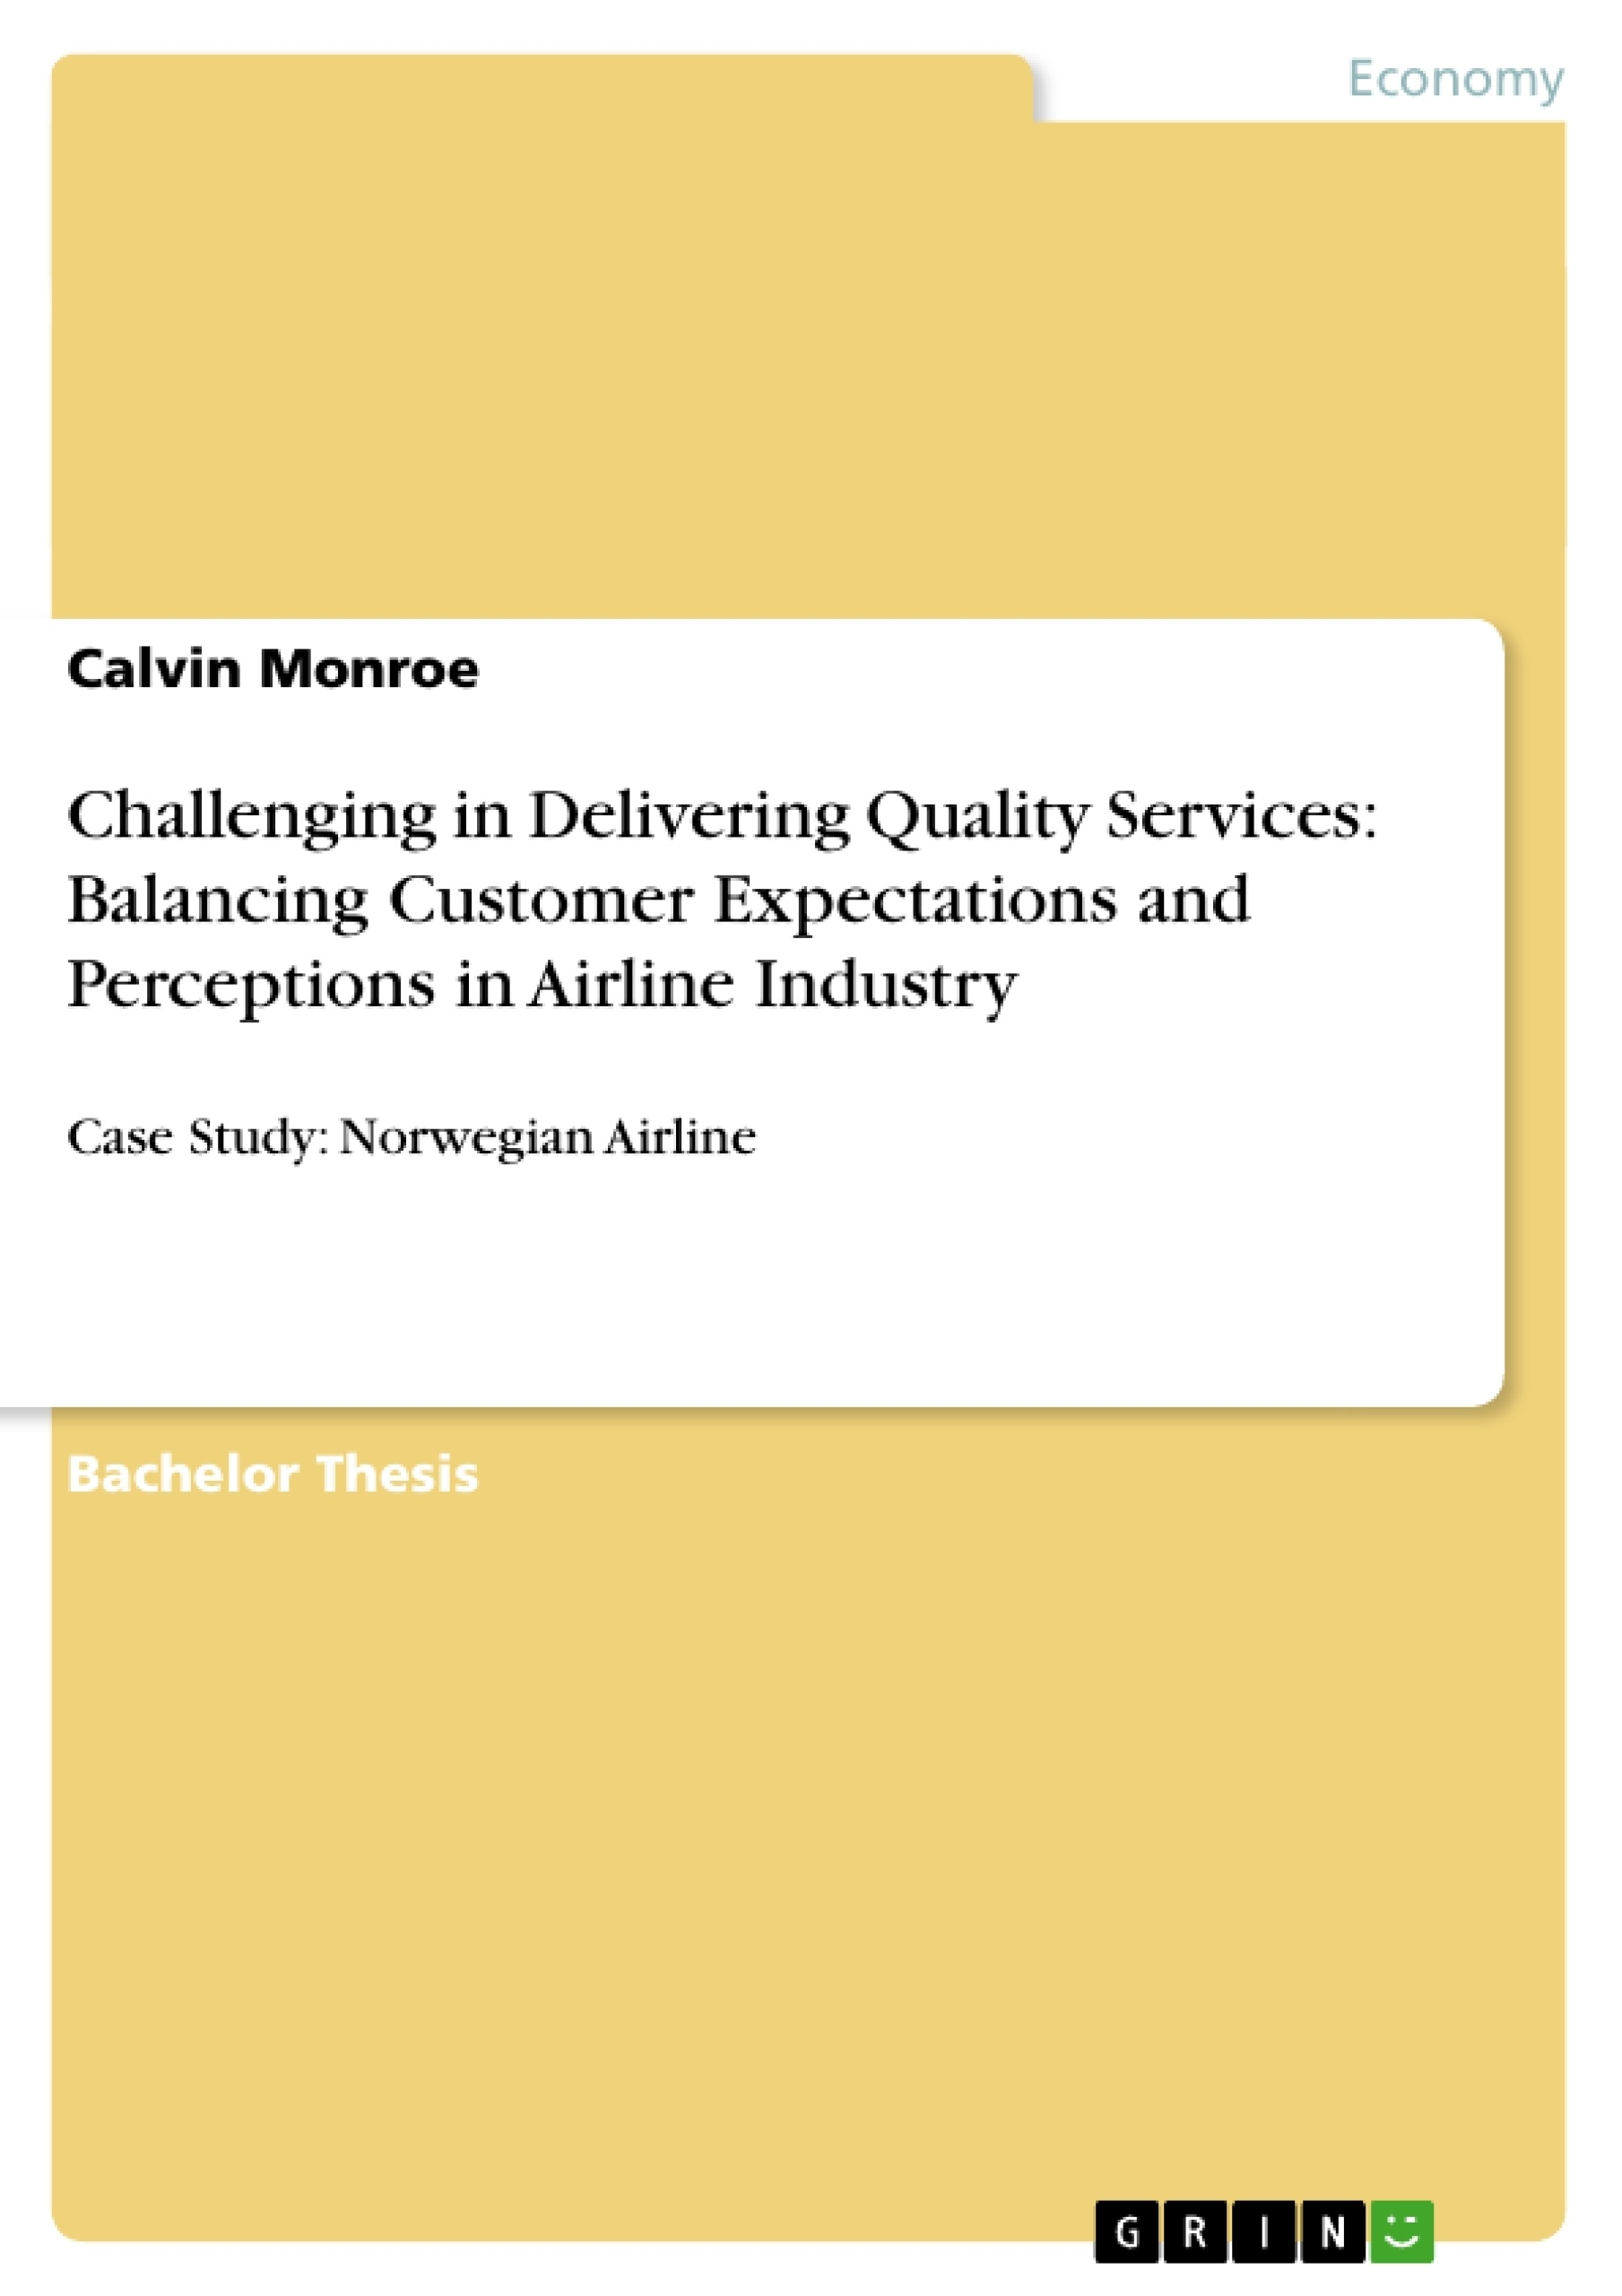 Title: Challenging in Delivering Quality Services: Balancing Customer Expectations and Perceptions in Airline Industry